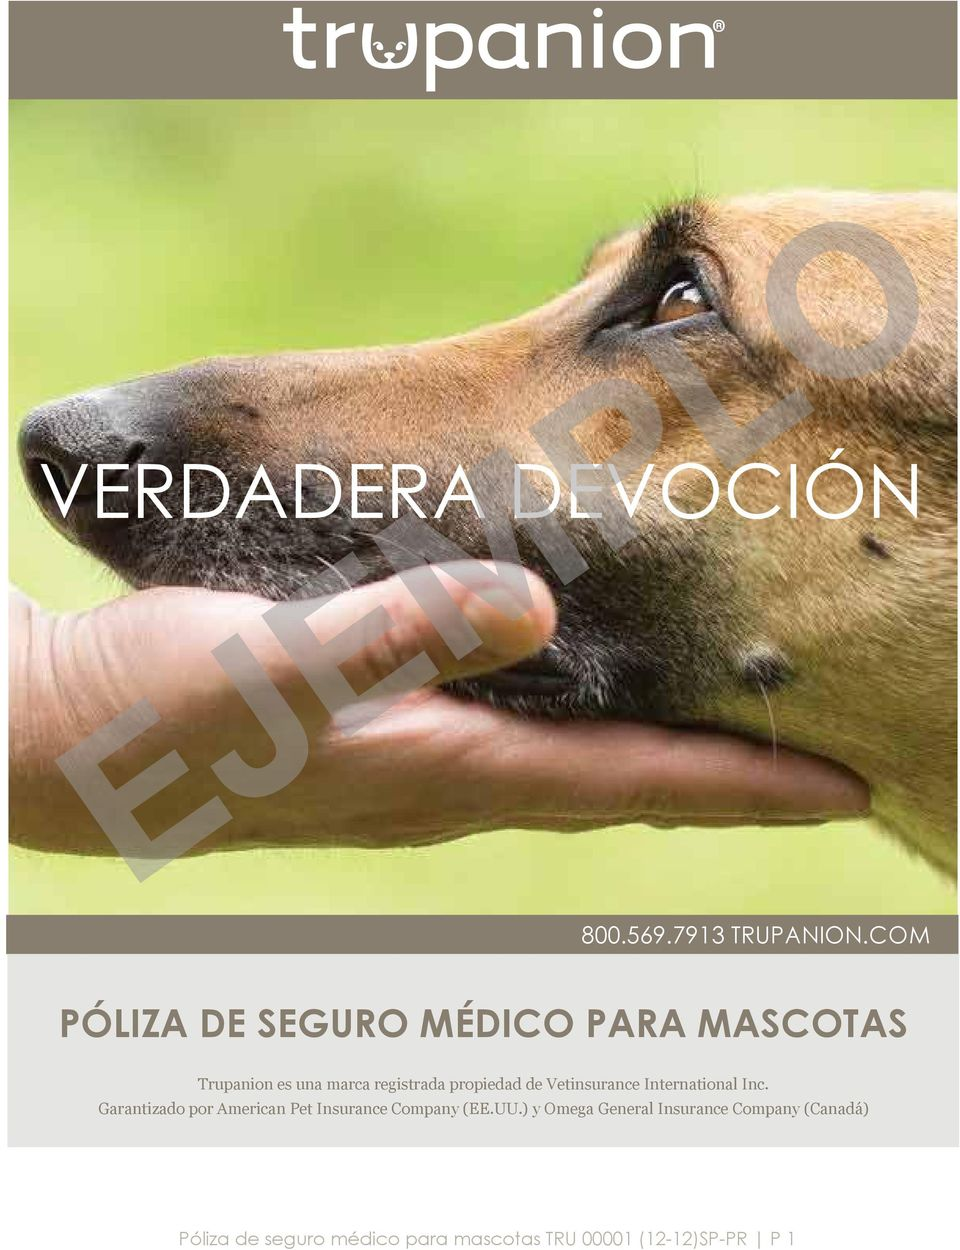 propiedad de Vetinsurance International Inc.